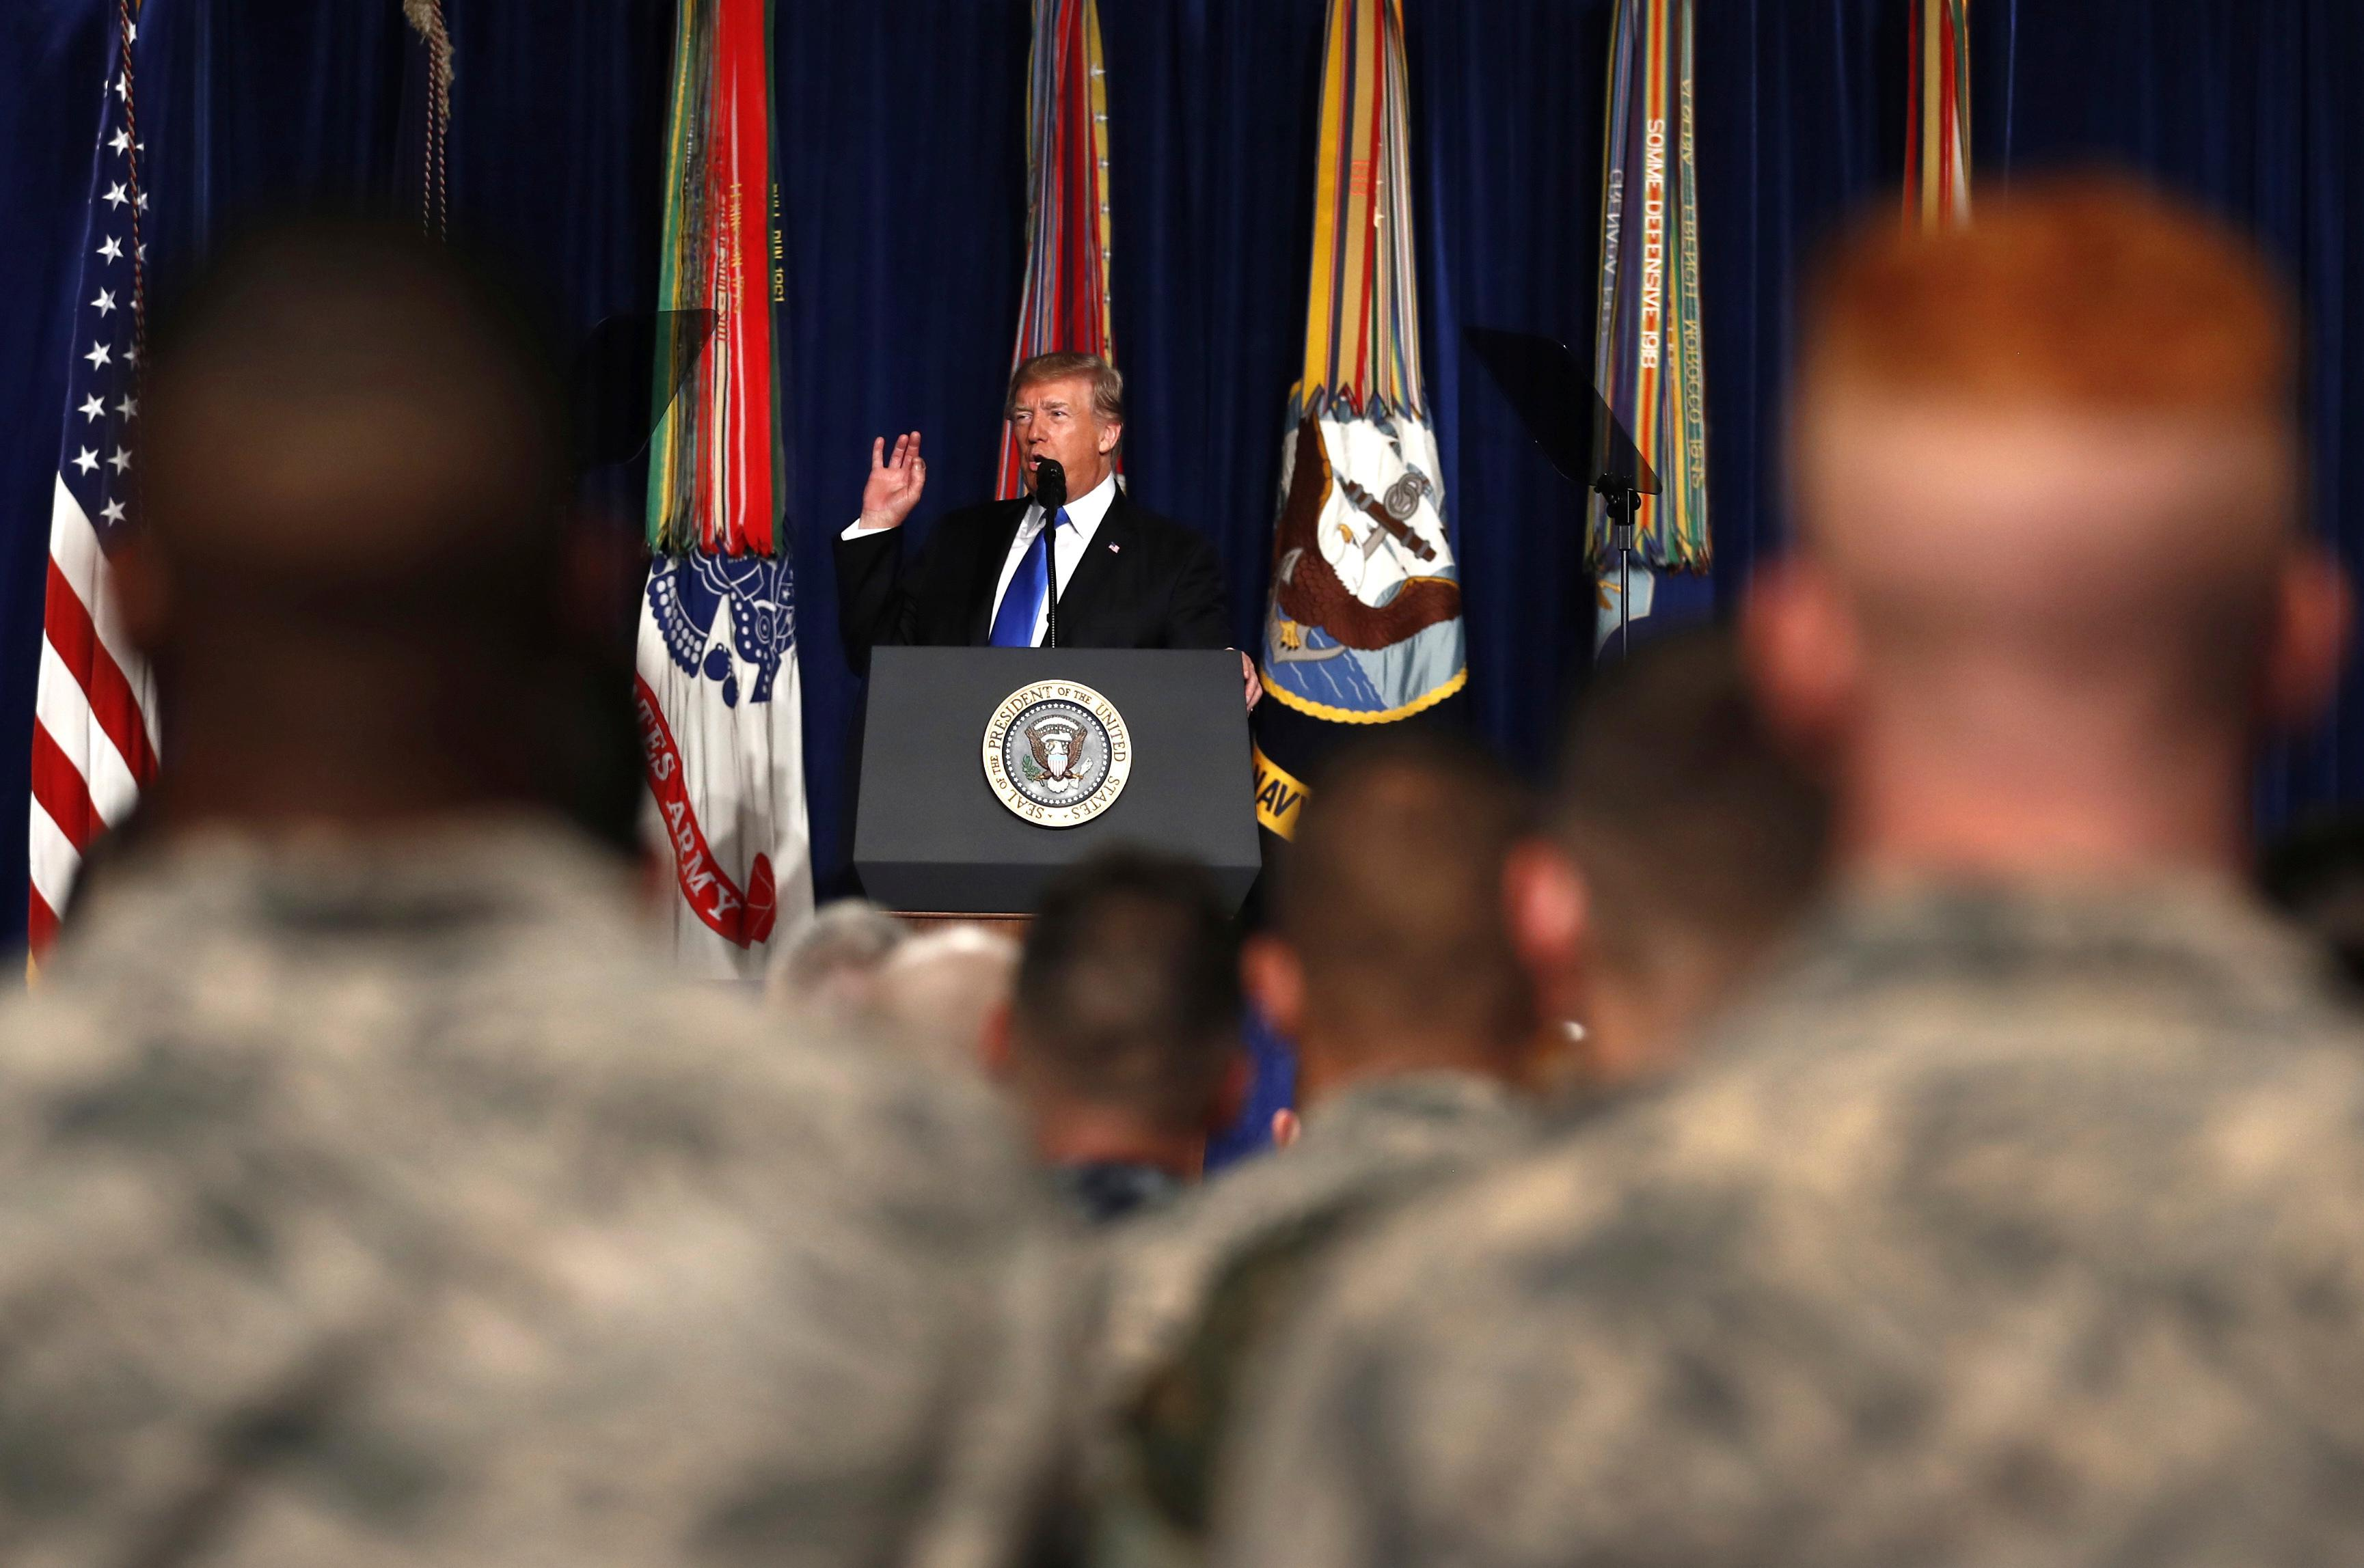 FILE - In this Aug. 21, 2017, file photo, President Donald Trump speaks at Fort Myer in Arlington Va., about U.S. strategy in Afghanistan. Trump on Oct. 17 will call the families of four soldiers killed this month in Niger, the White House says, as Trump again casts doubt on whether his predecessor appropriately consoled the families of military personnel who died in war. (AP Photo/Carolyn Kaster, File)